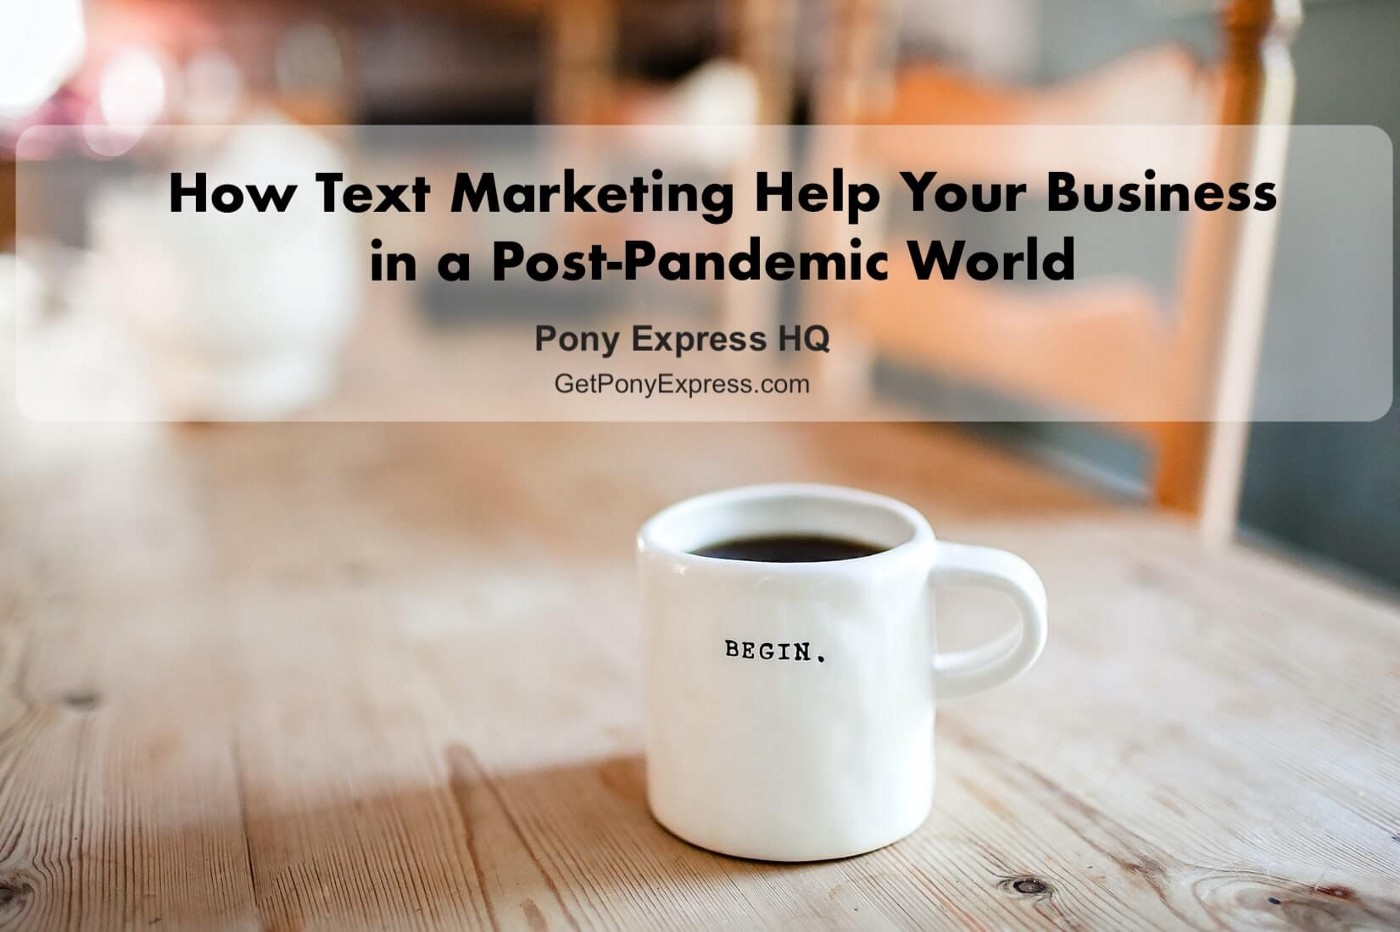 How Text Marketing Help Your Business in a Post-Pandemic World